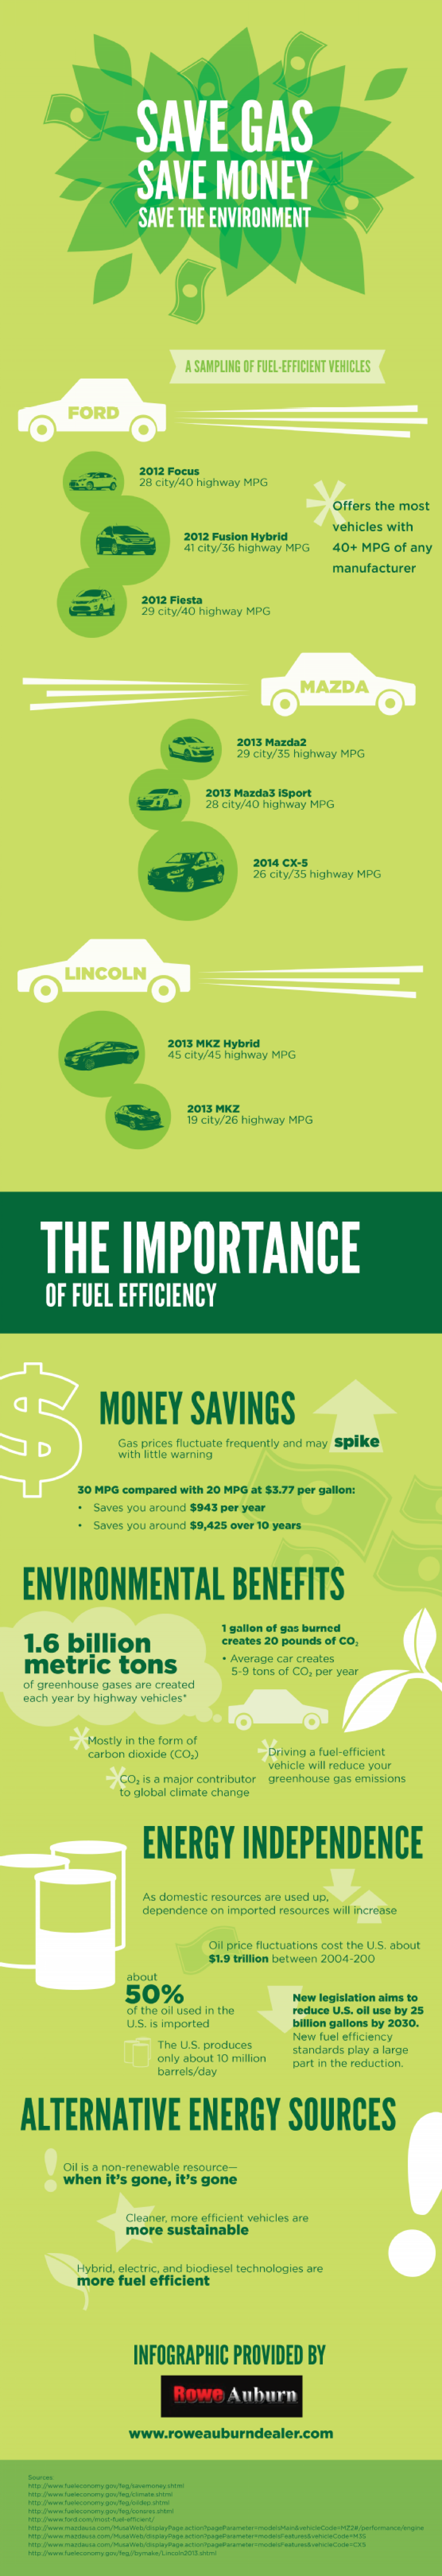 Save Money, Save Gas, Save the Enviornment Infographic